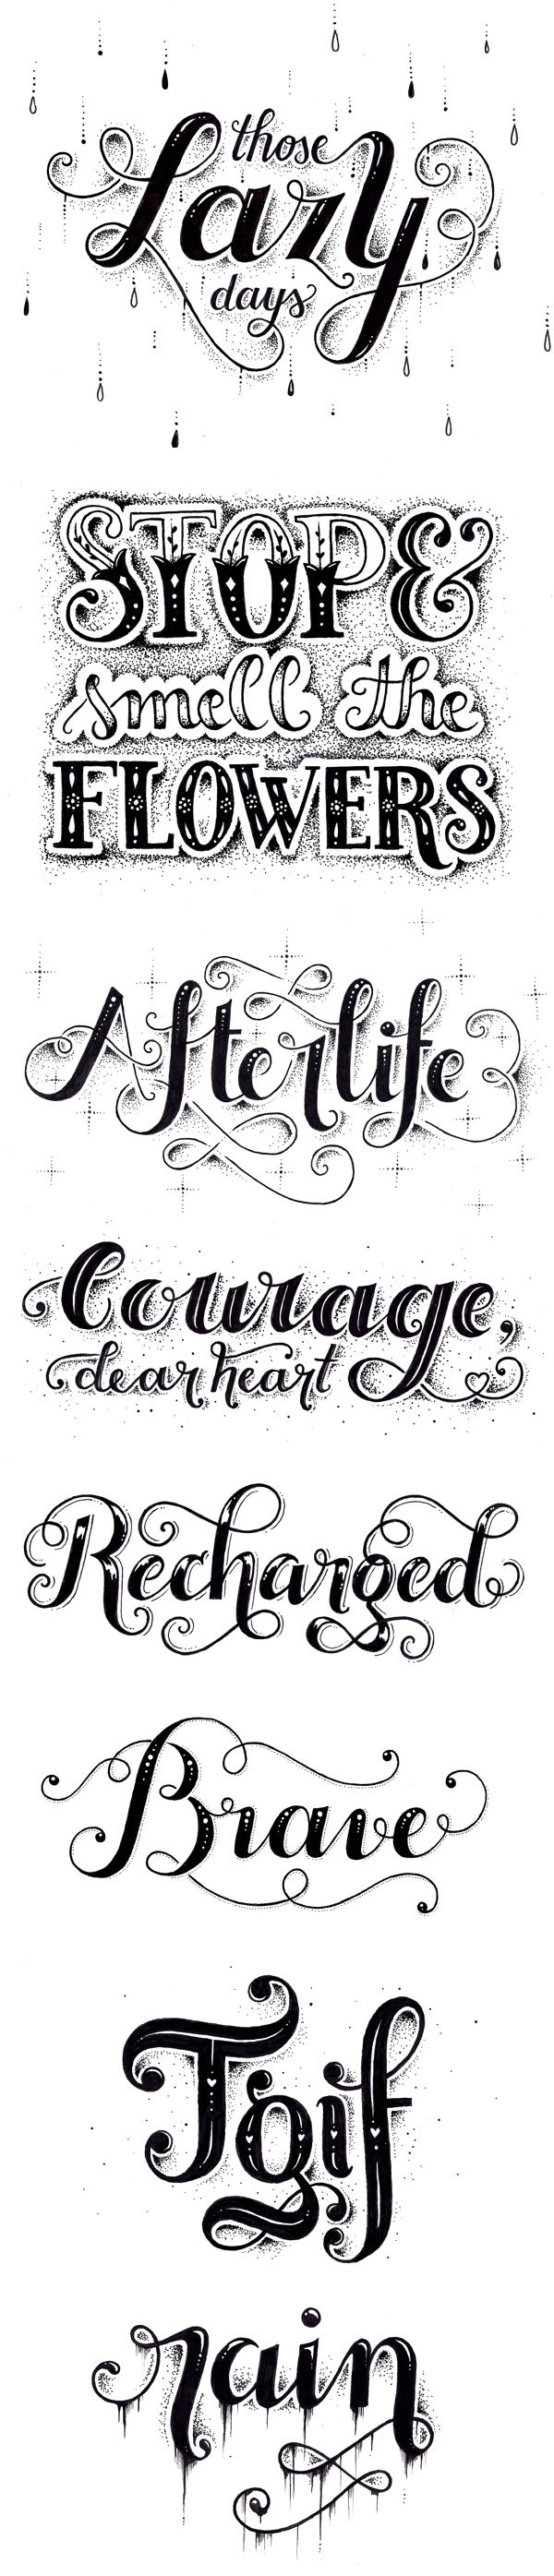 Best Hand Lettering Images On   Handwriting Fonts